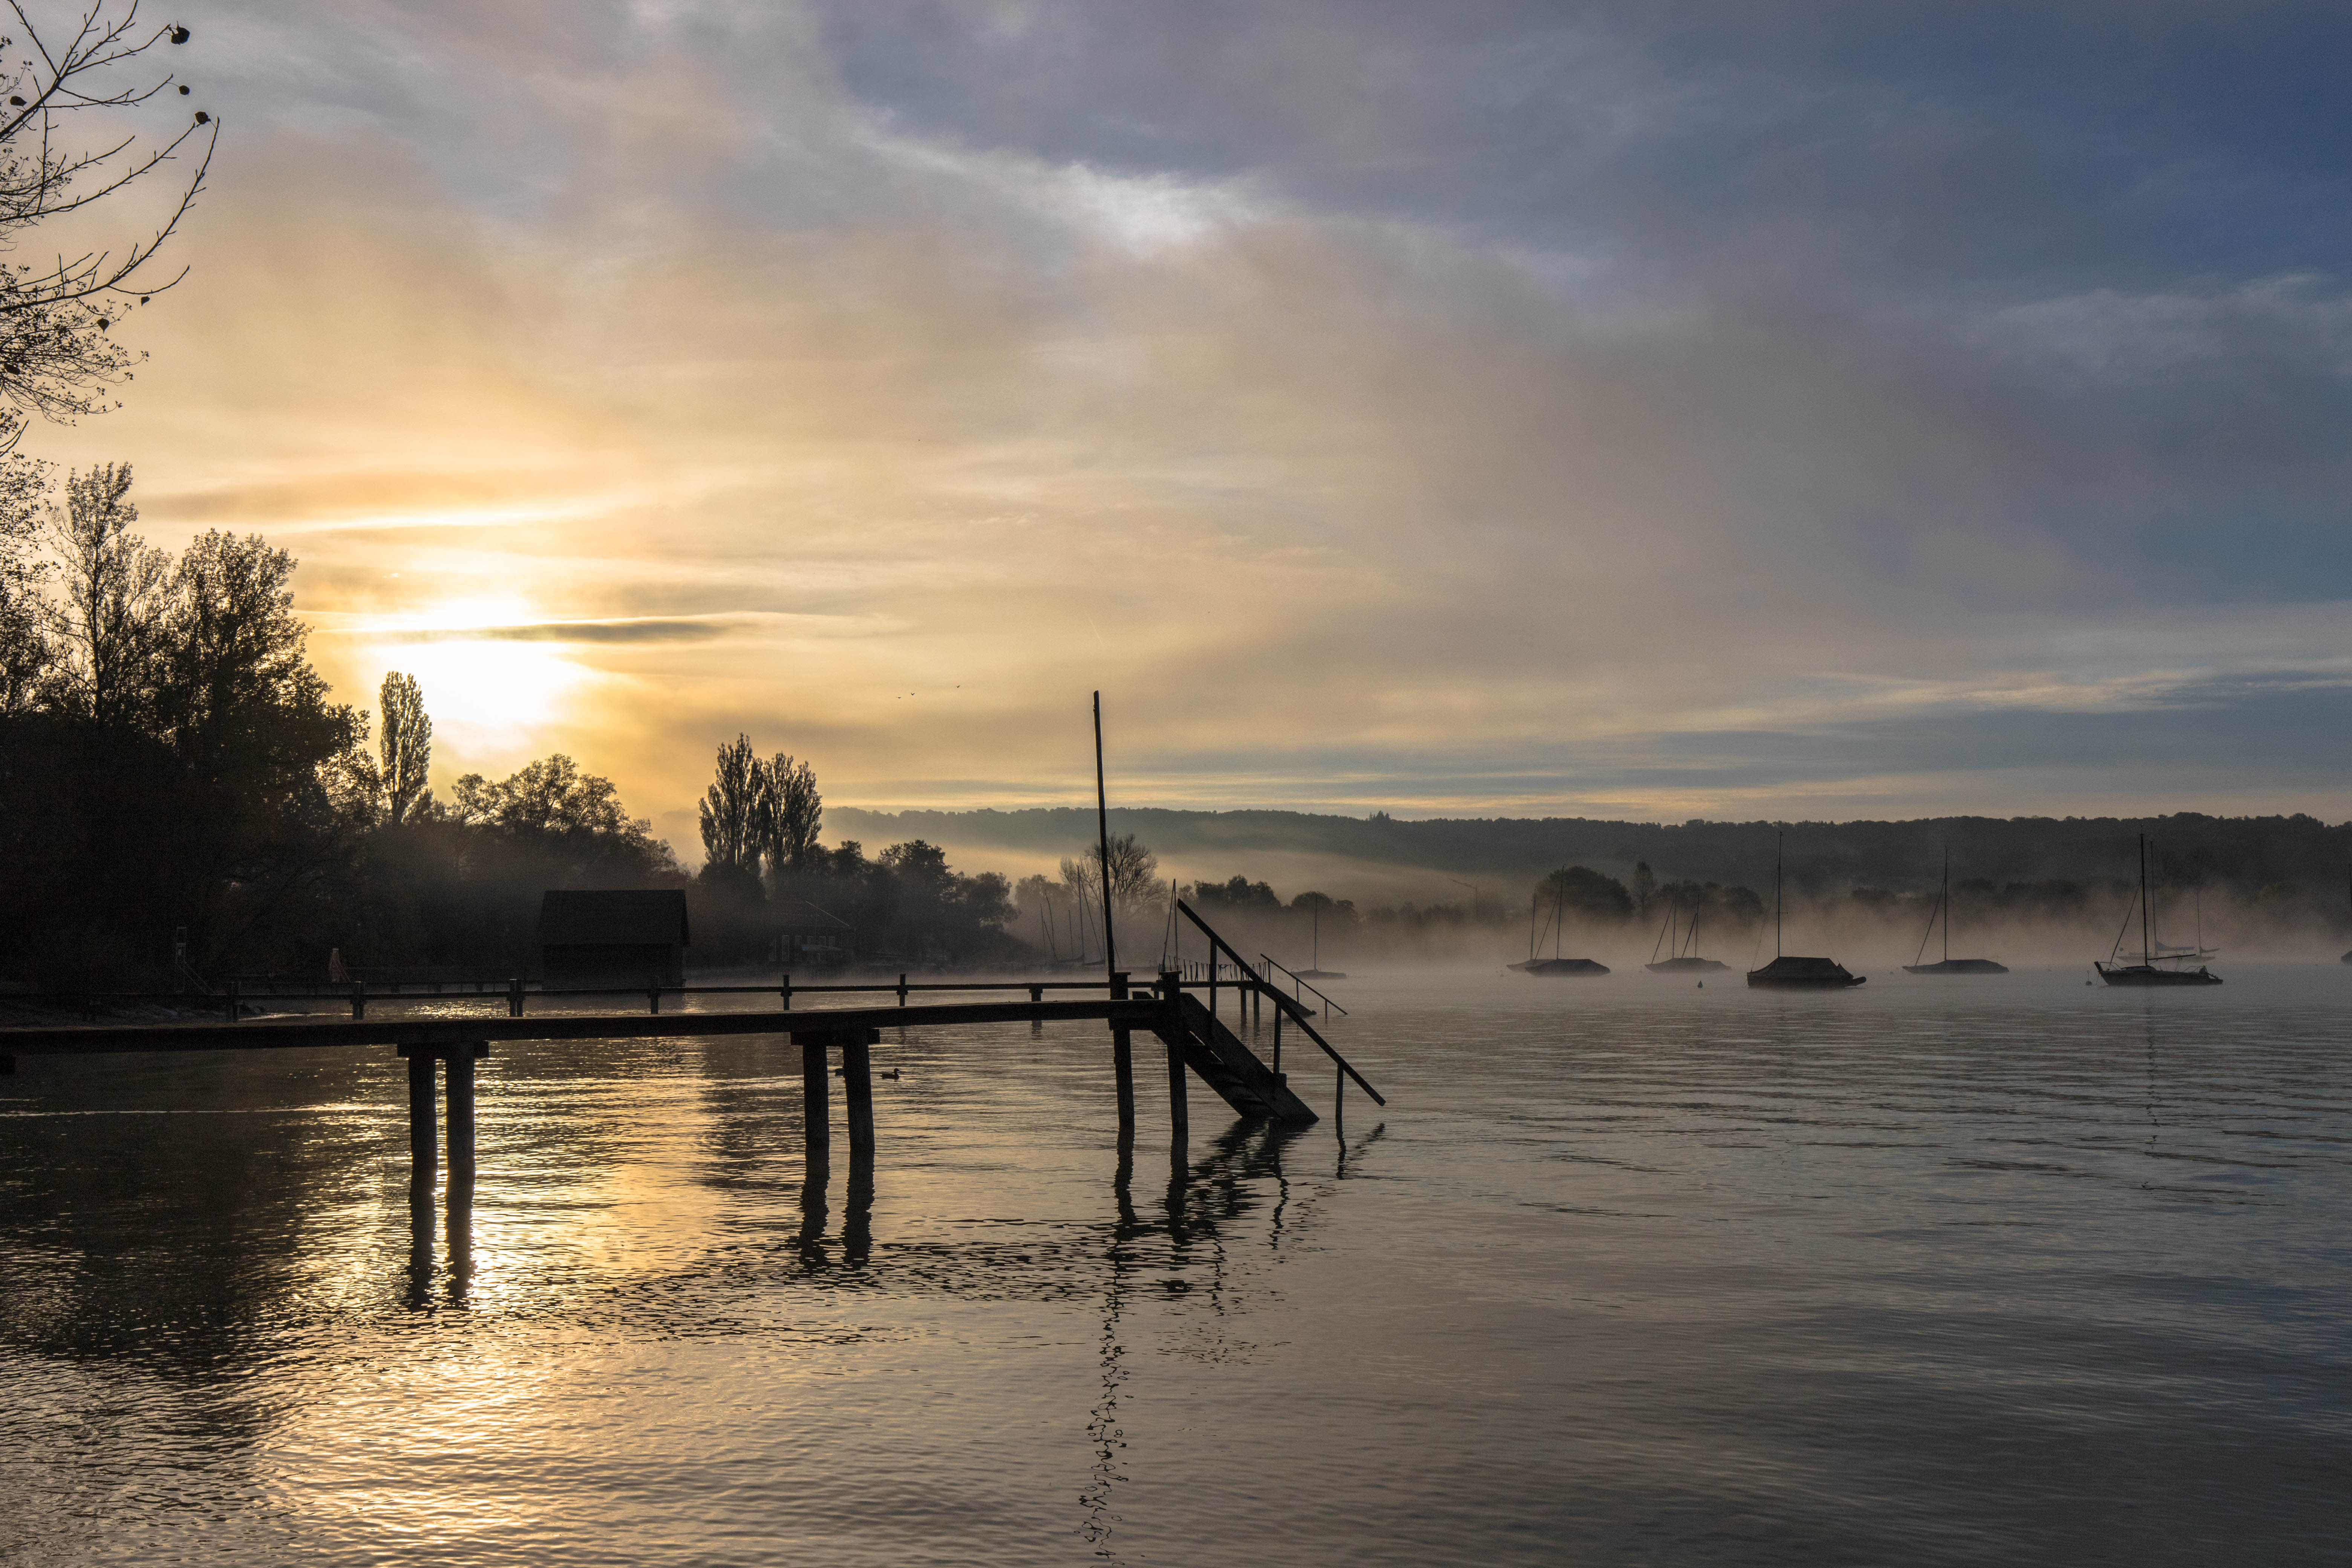 Morgens am Ammersee